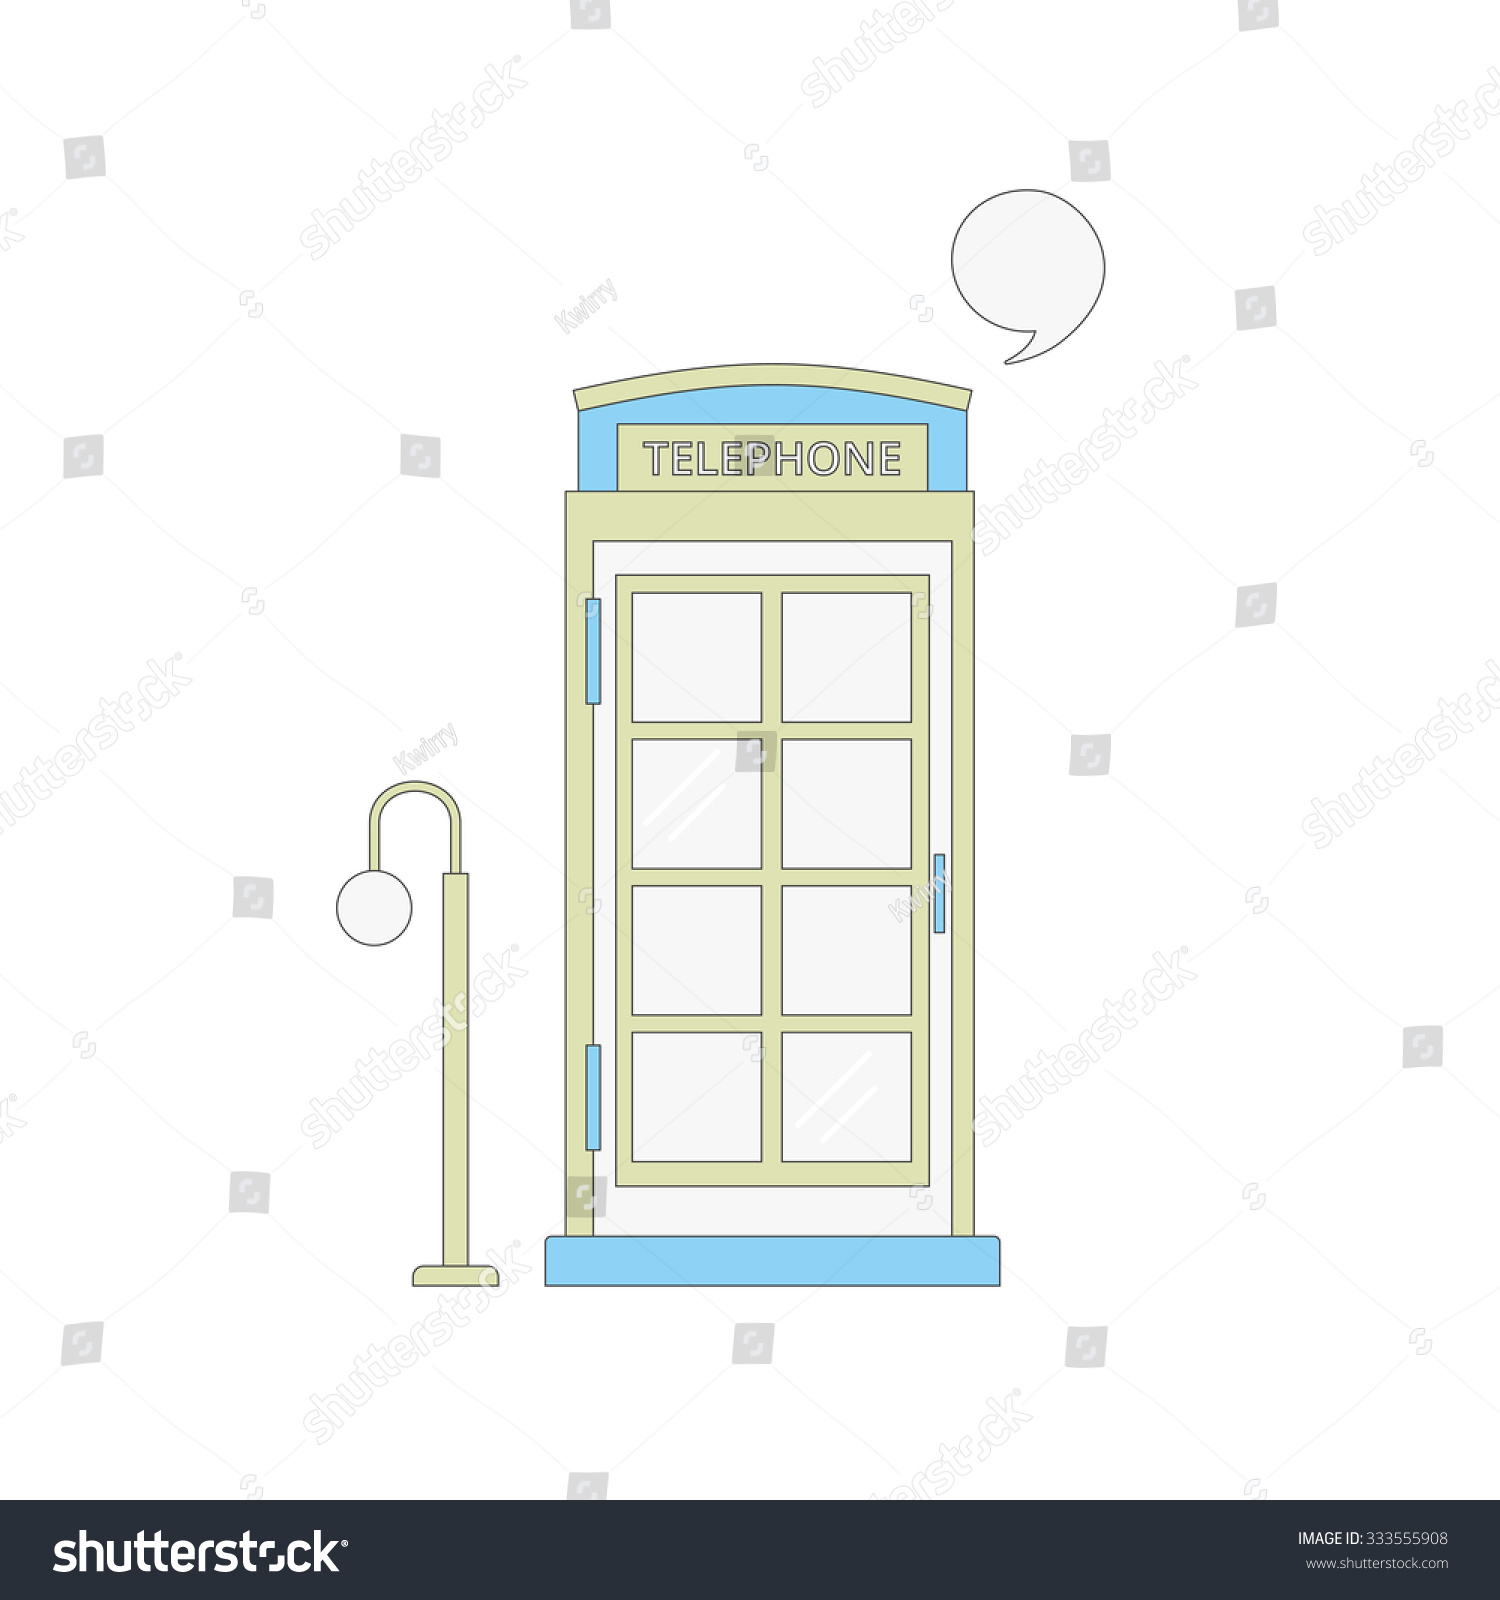 English Phone Booth Diagram Trusted Wiring Vector Illustration Telephone Stock Rh Shutterstock Com Kit Original